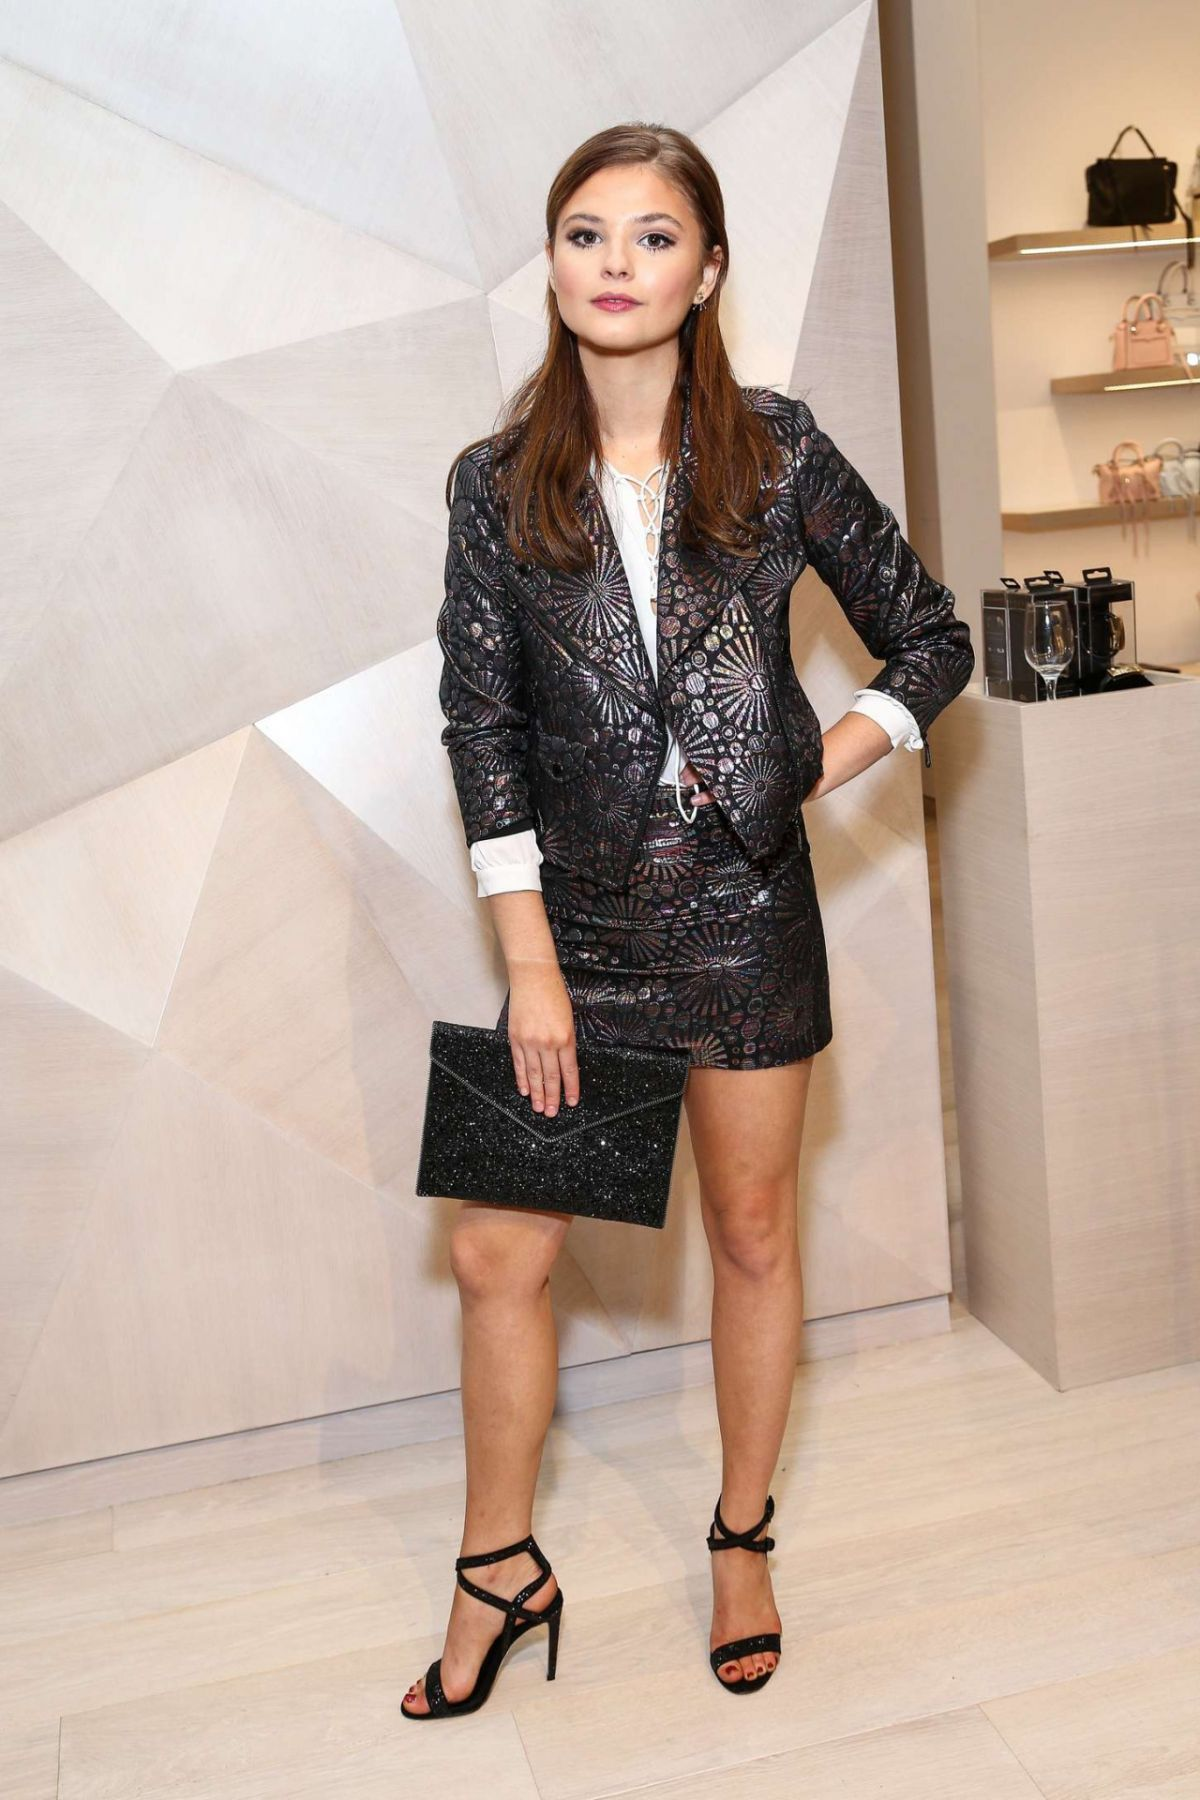 STEFANIE SCOTT at Rebecca Minkoff Flagship Store Opening in Los Angeles 10/27/2015